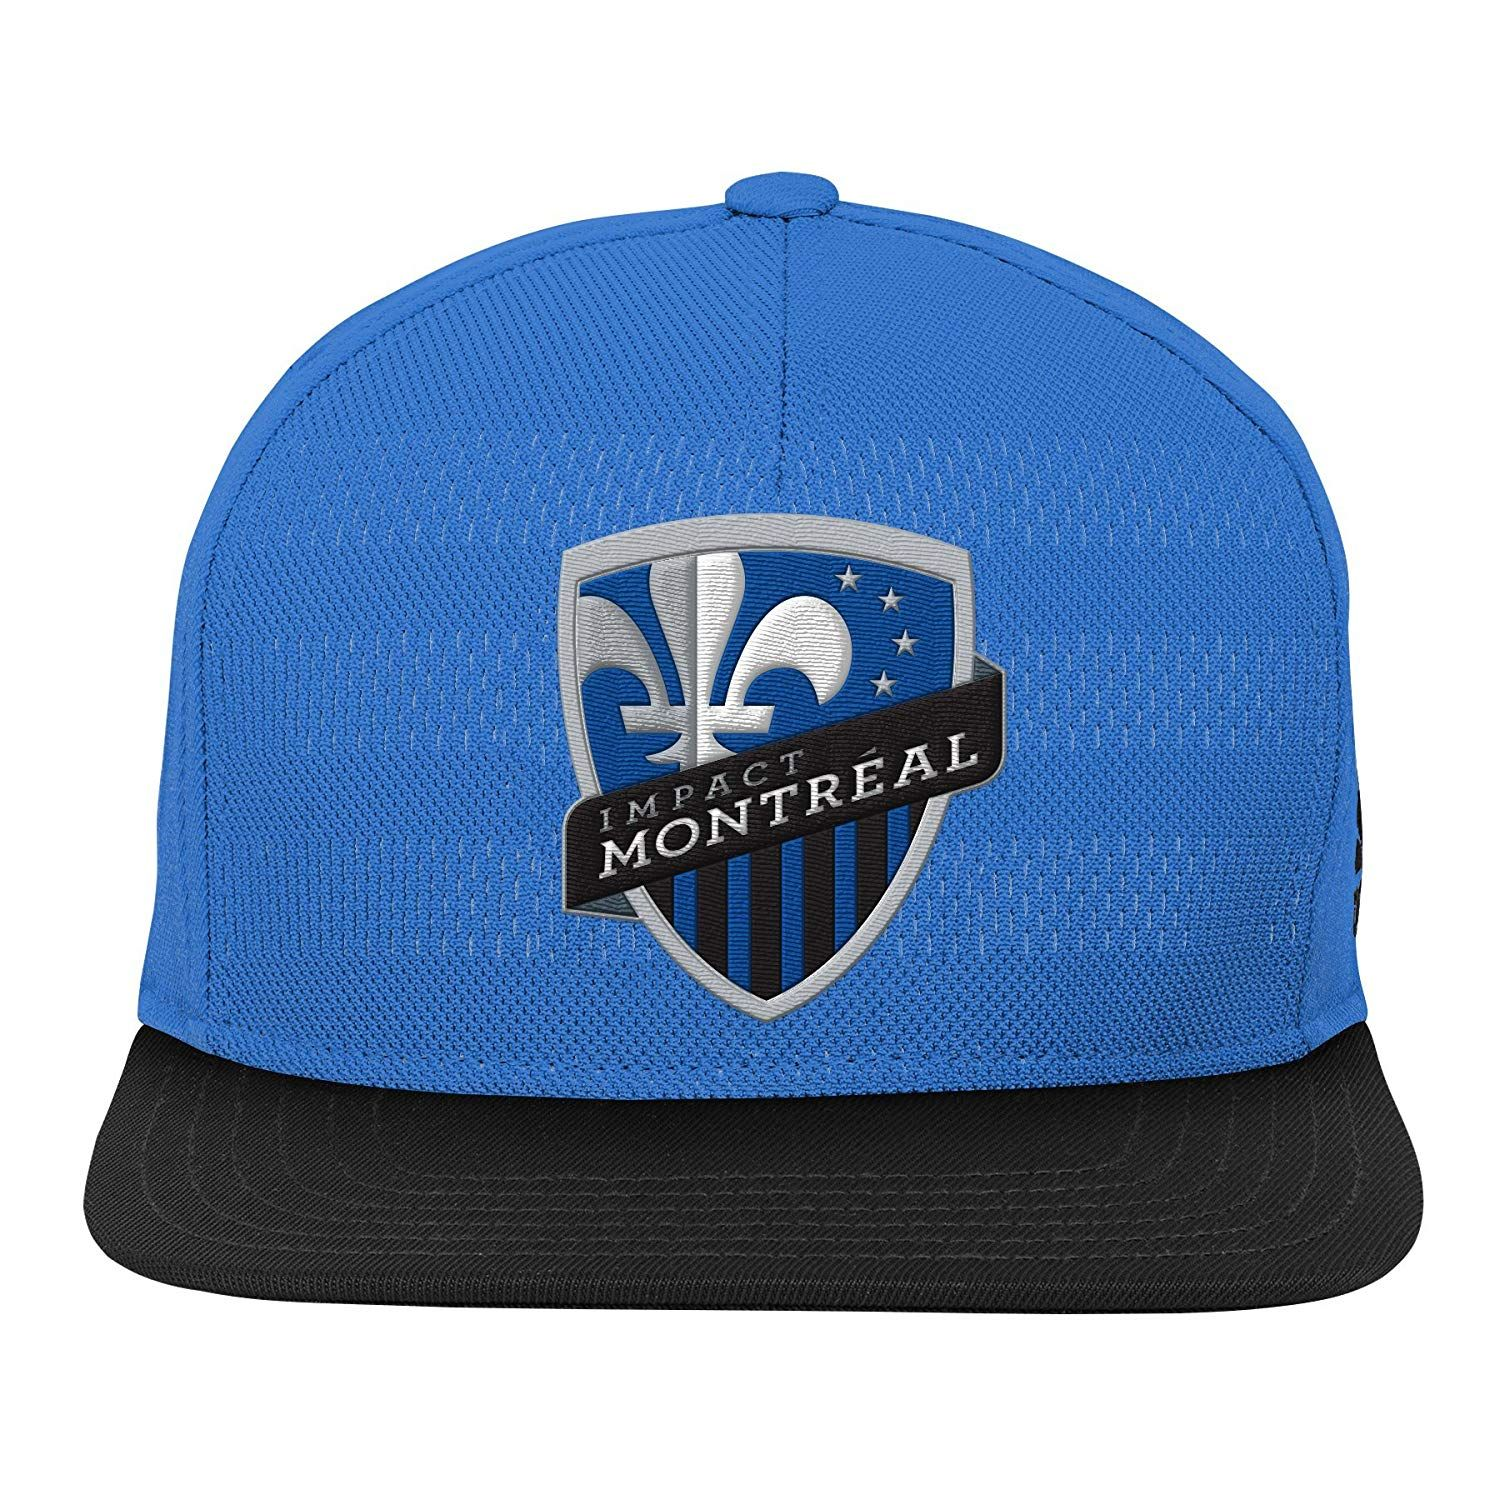 b49f46867260a MLS Montreal Impact Youth Boys Authentic Flatbrim Snapback